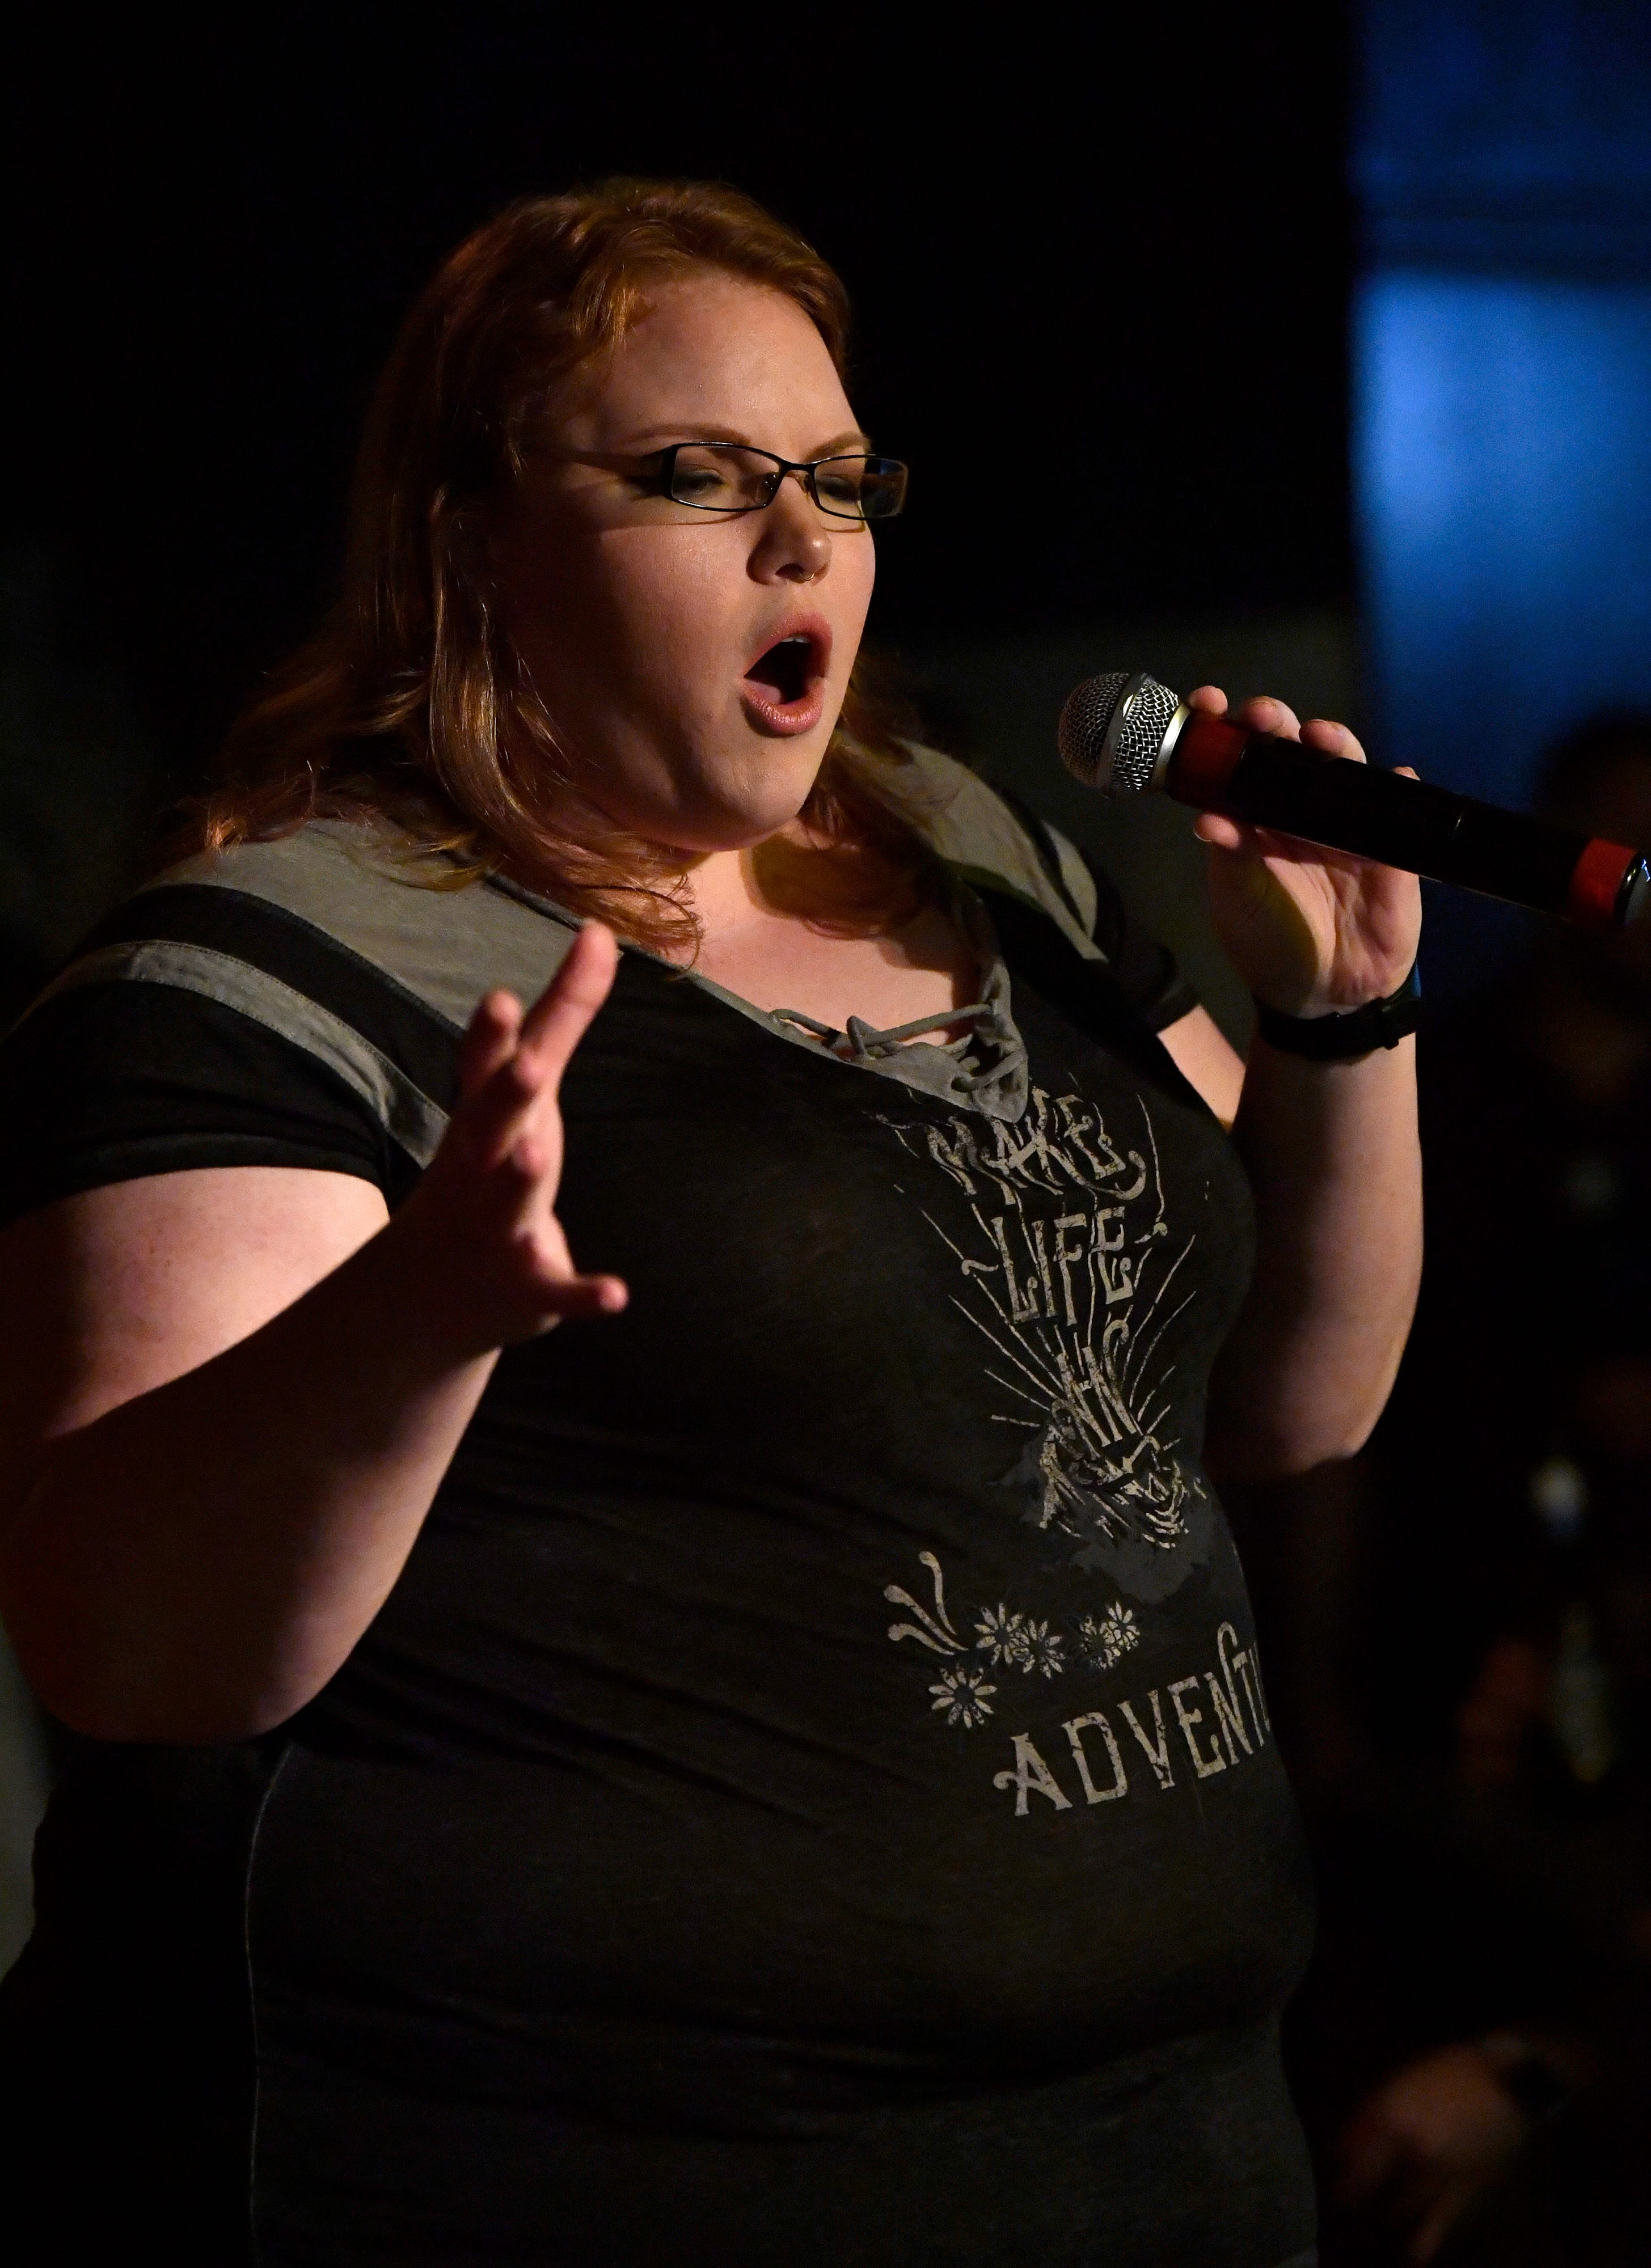 Anna Gabriel performs at The Zone Bar & Grill during Open Mic Comedy Night.